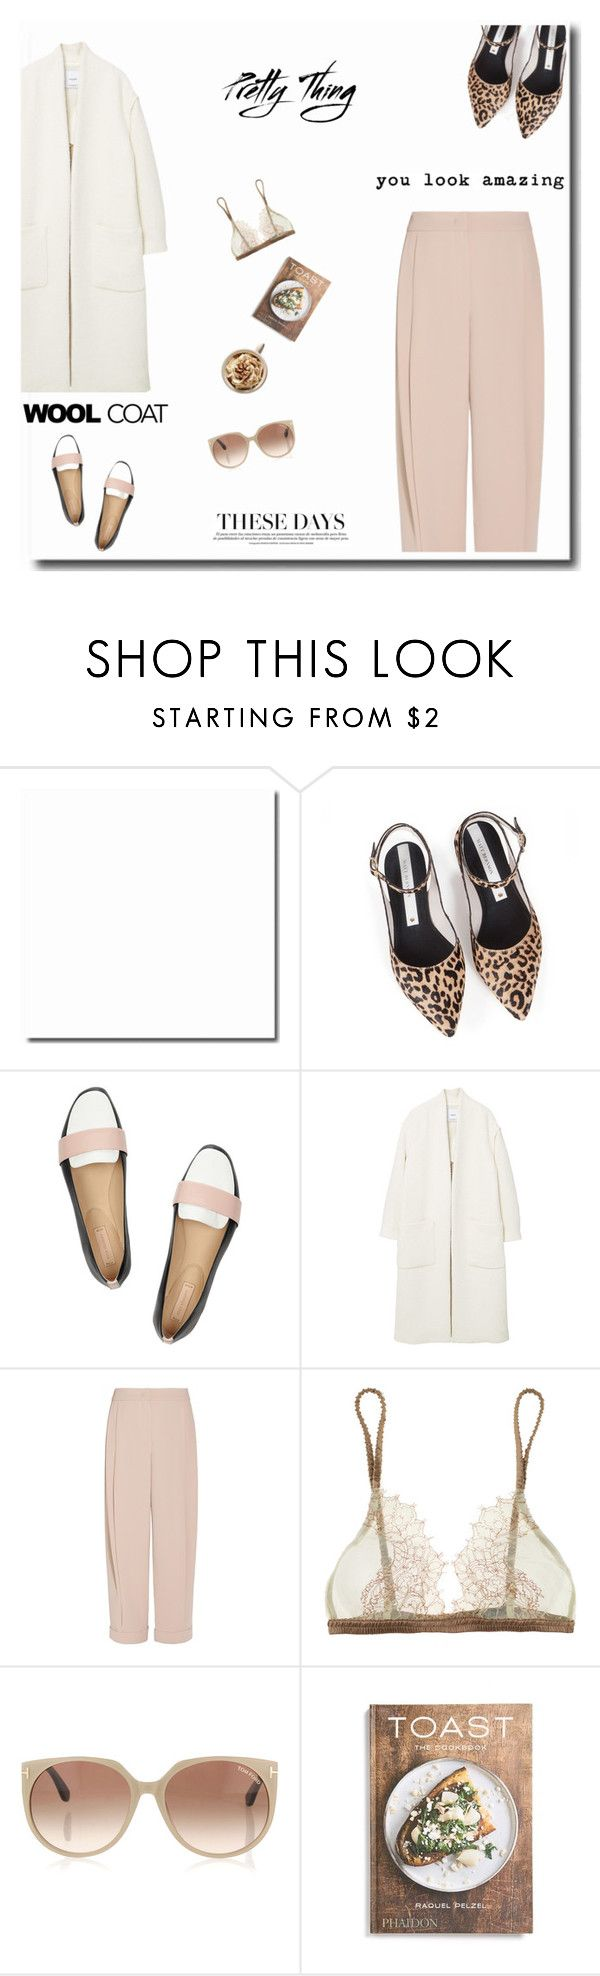 """It's a lovely day!"" by cinnamonrose30 ❤ liked on Polyvore featuring Zolà, Reed Krakoff, MANGO, Emporio Armani, La Fée Verte, Tom Ford and PHAIDON"